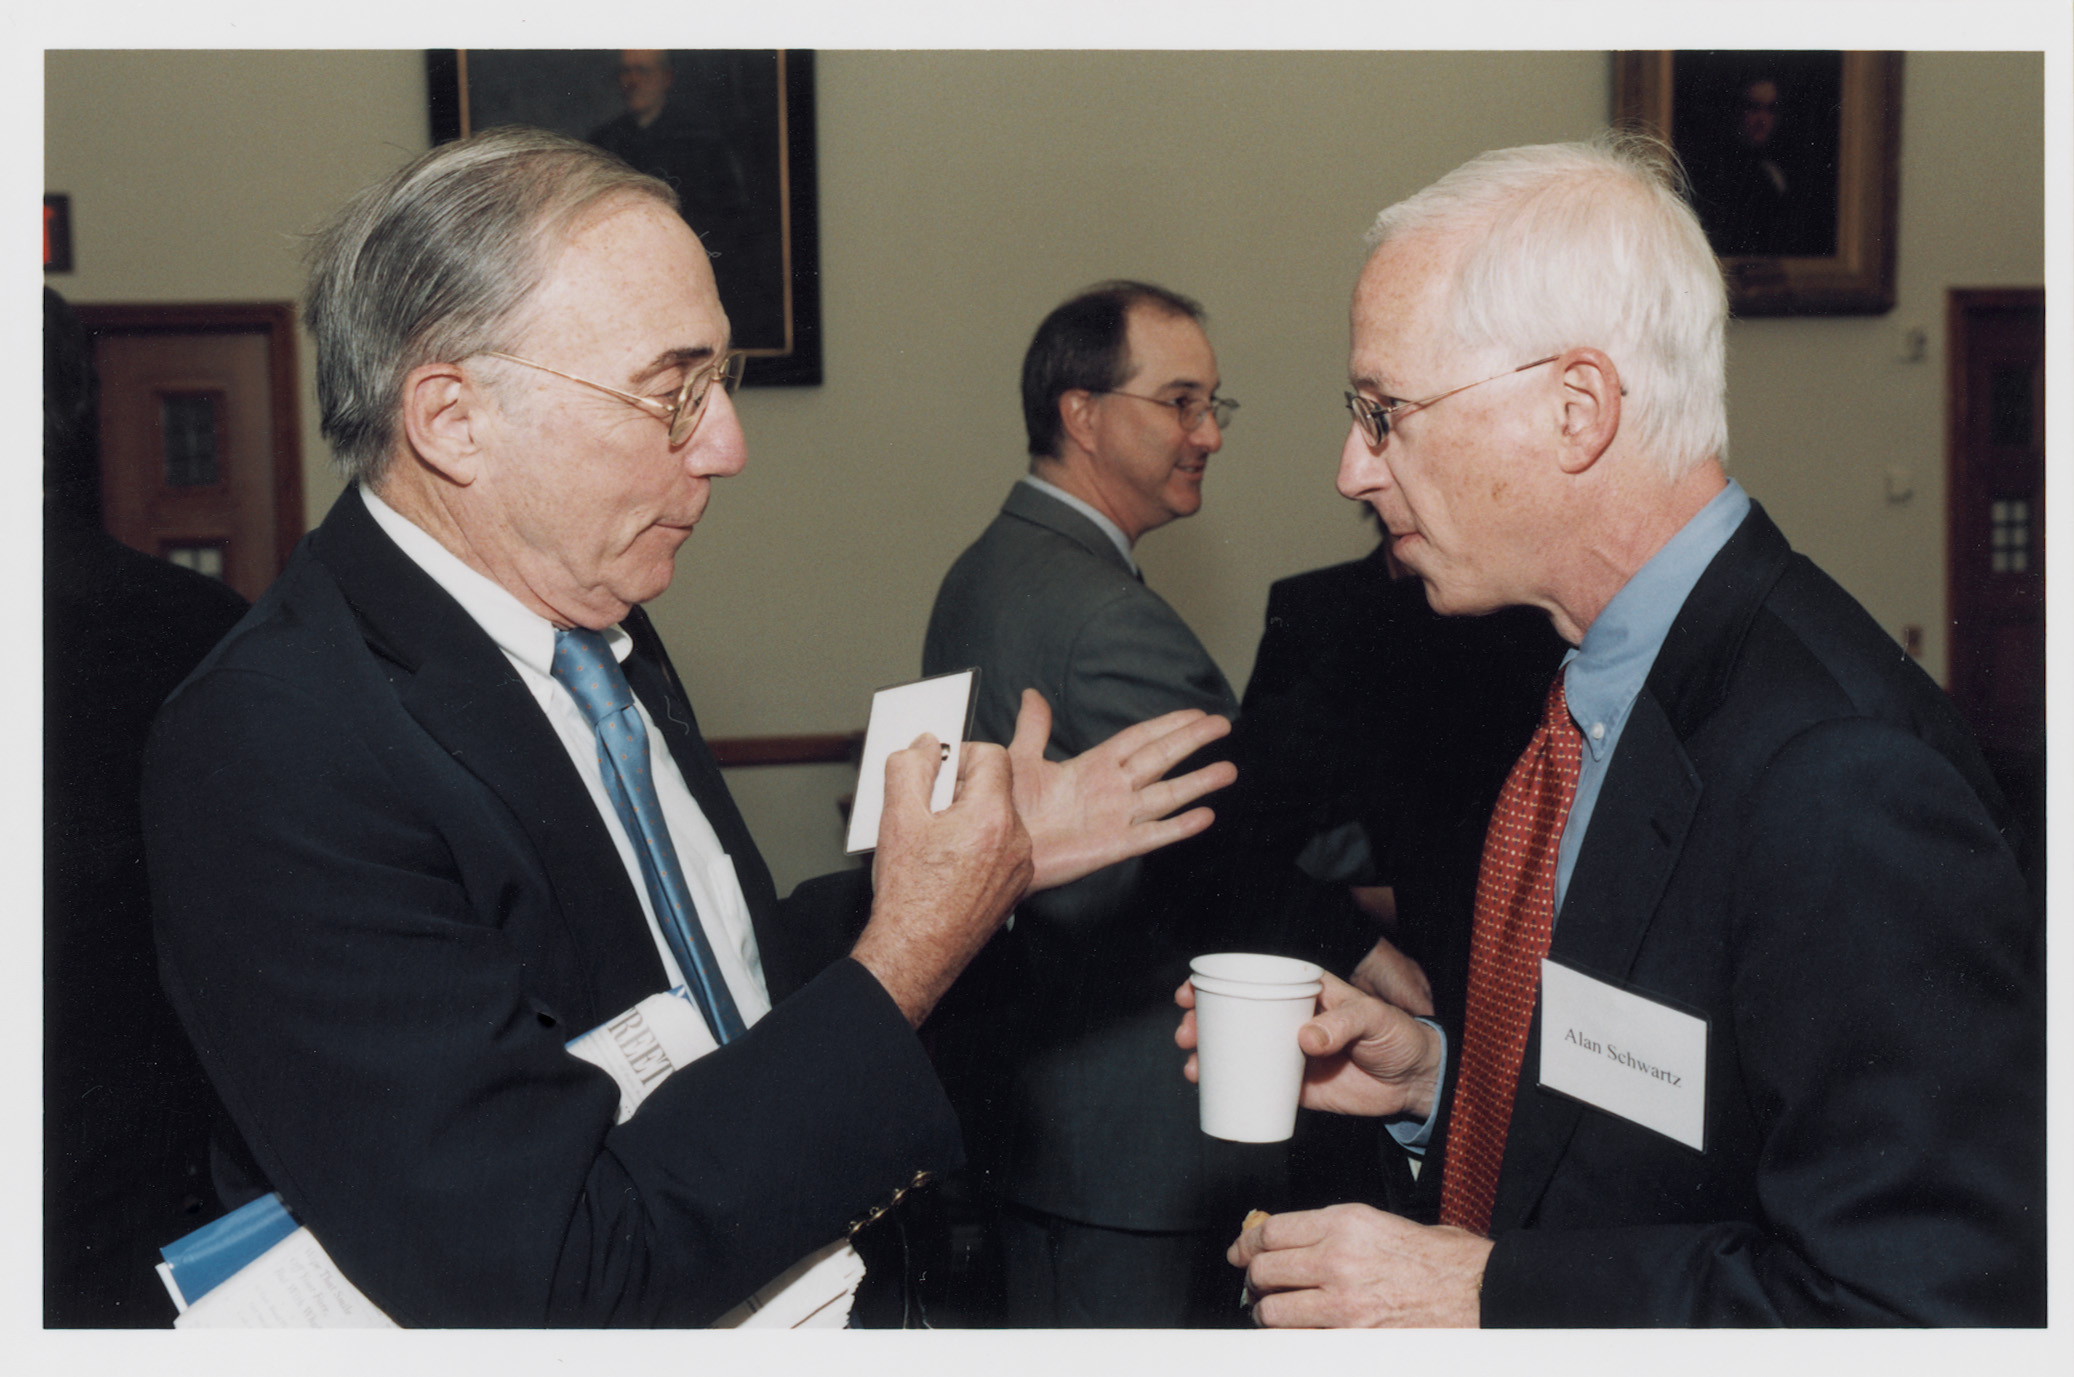 Robert Todd Lang '47 and Prof. Alan Schwartz '64